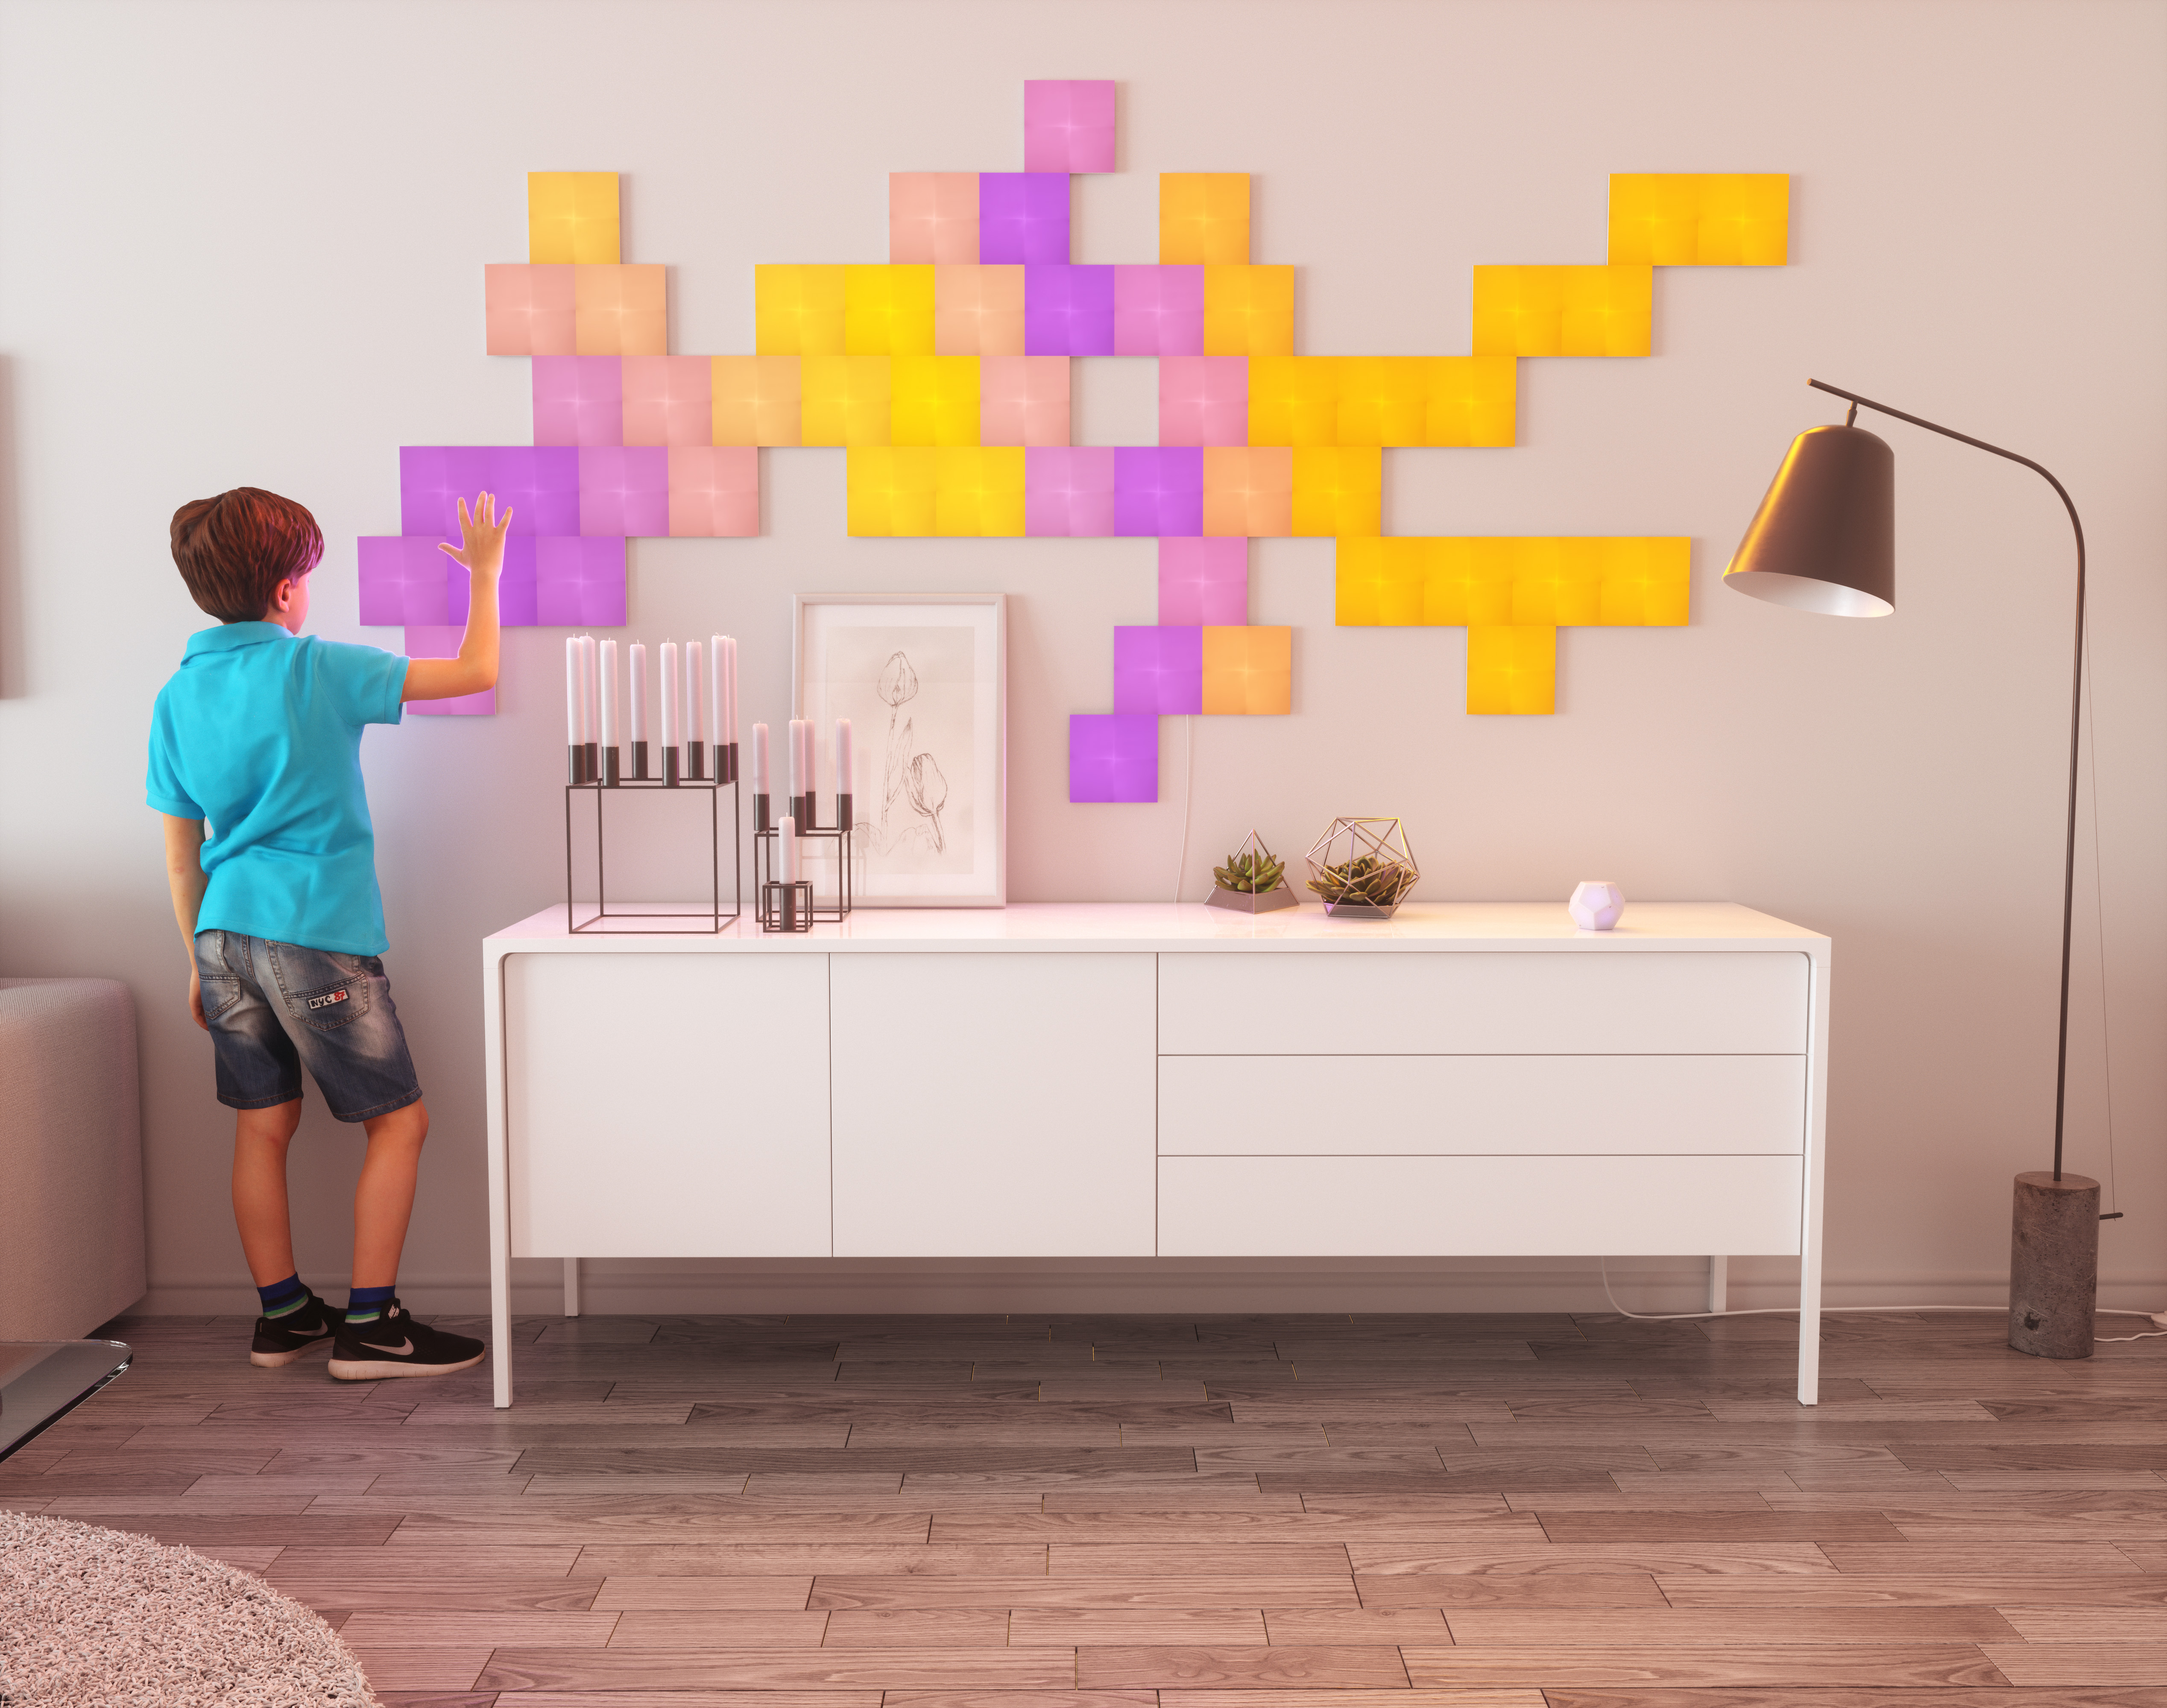 Nanoleaf-Canvas-_kid_hires